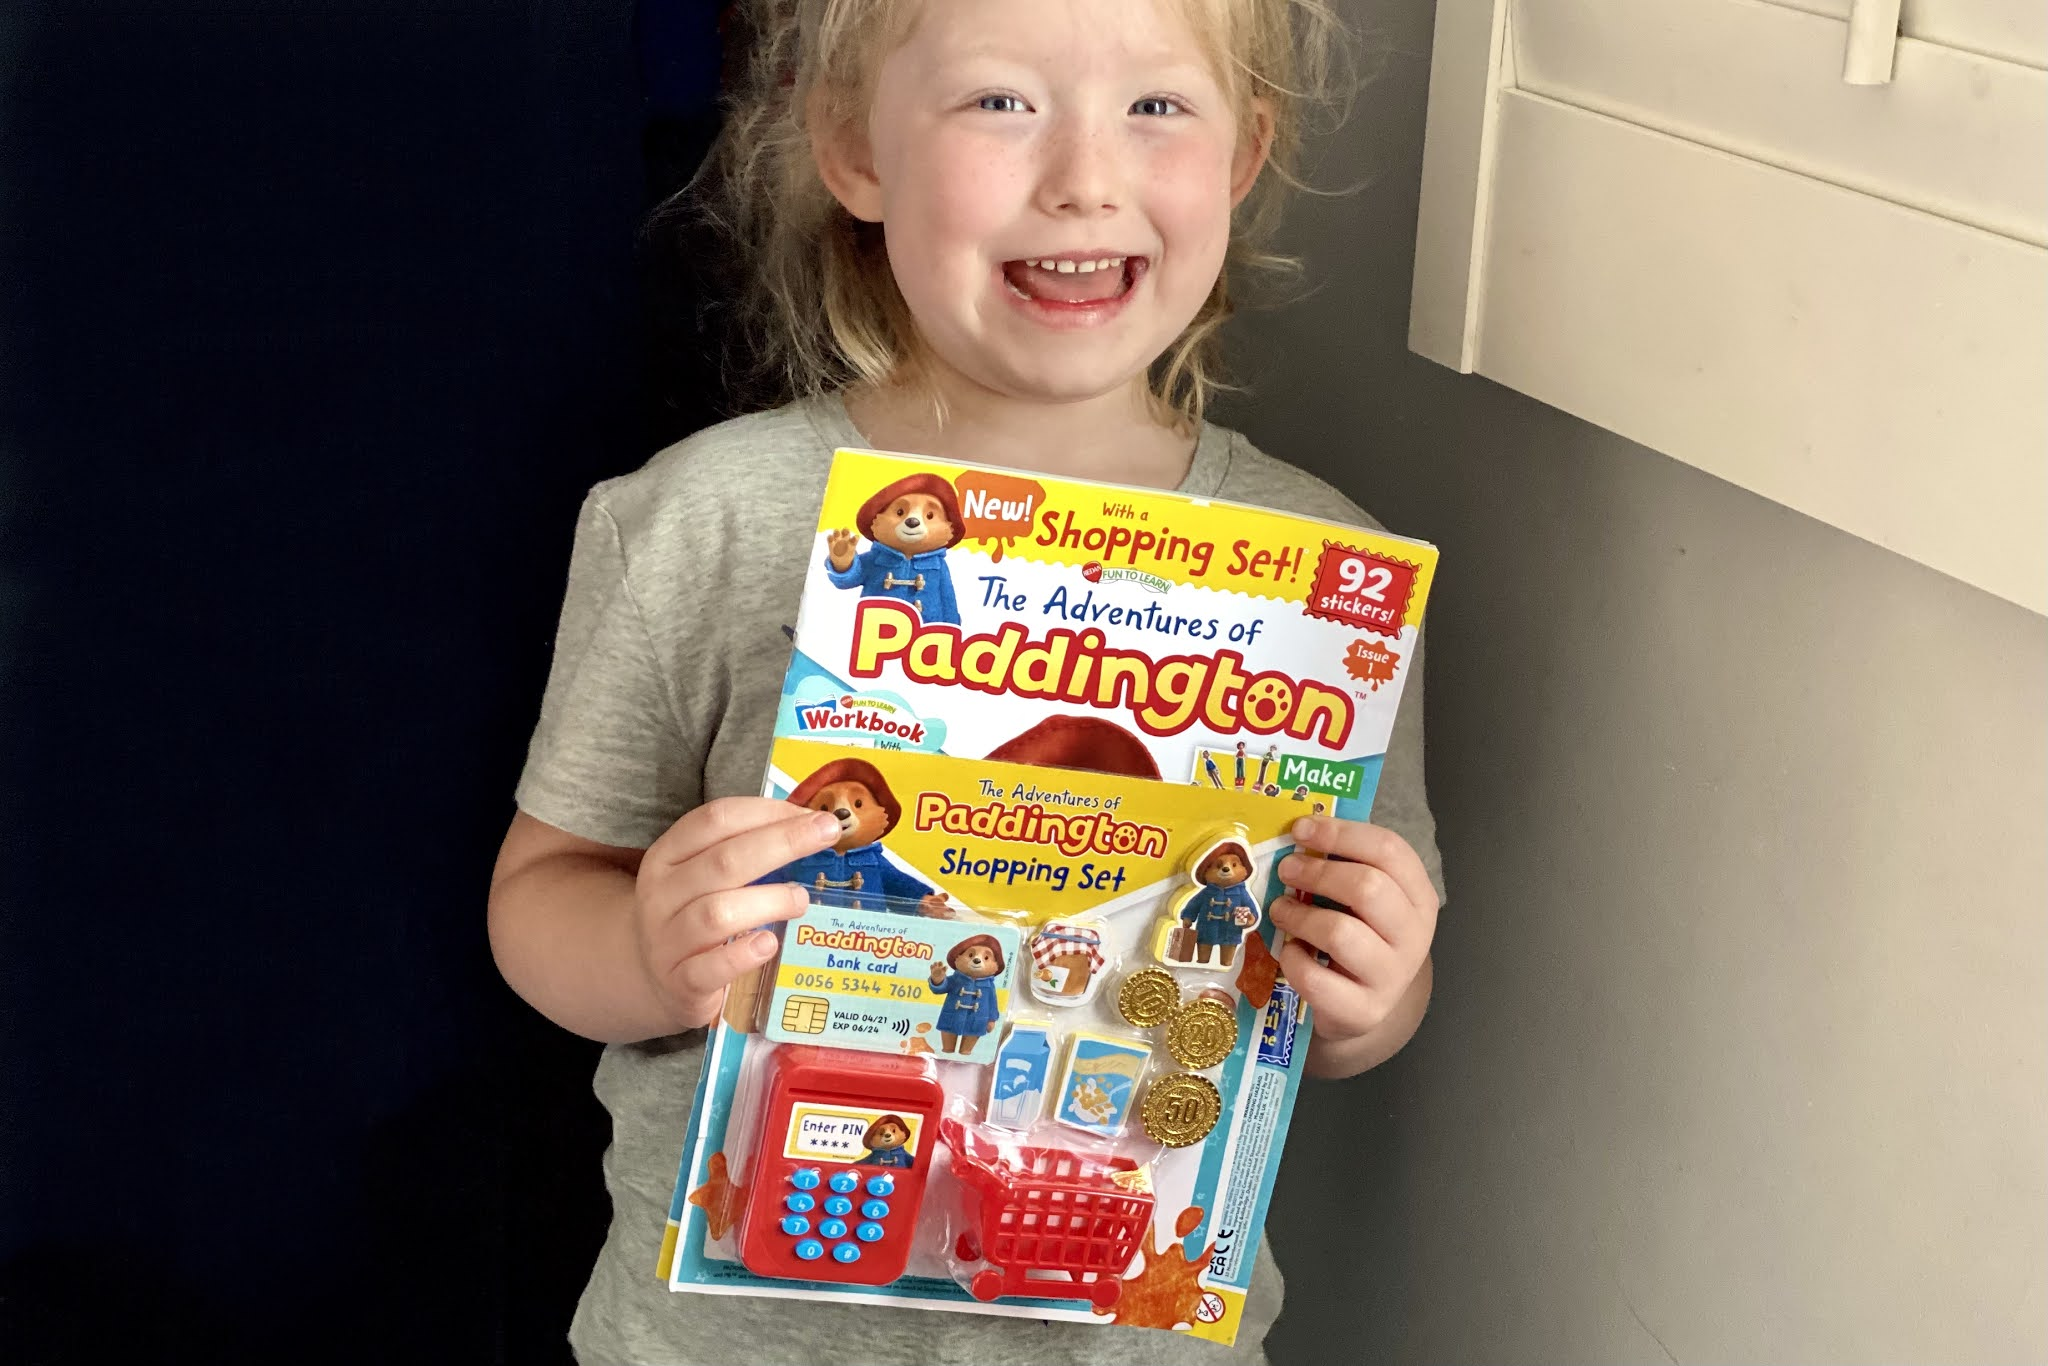 A happy looking 5 year old holding The Adventures of Paddington Bear magazine in front of her ready to review it